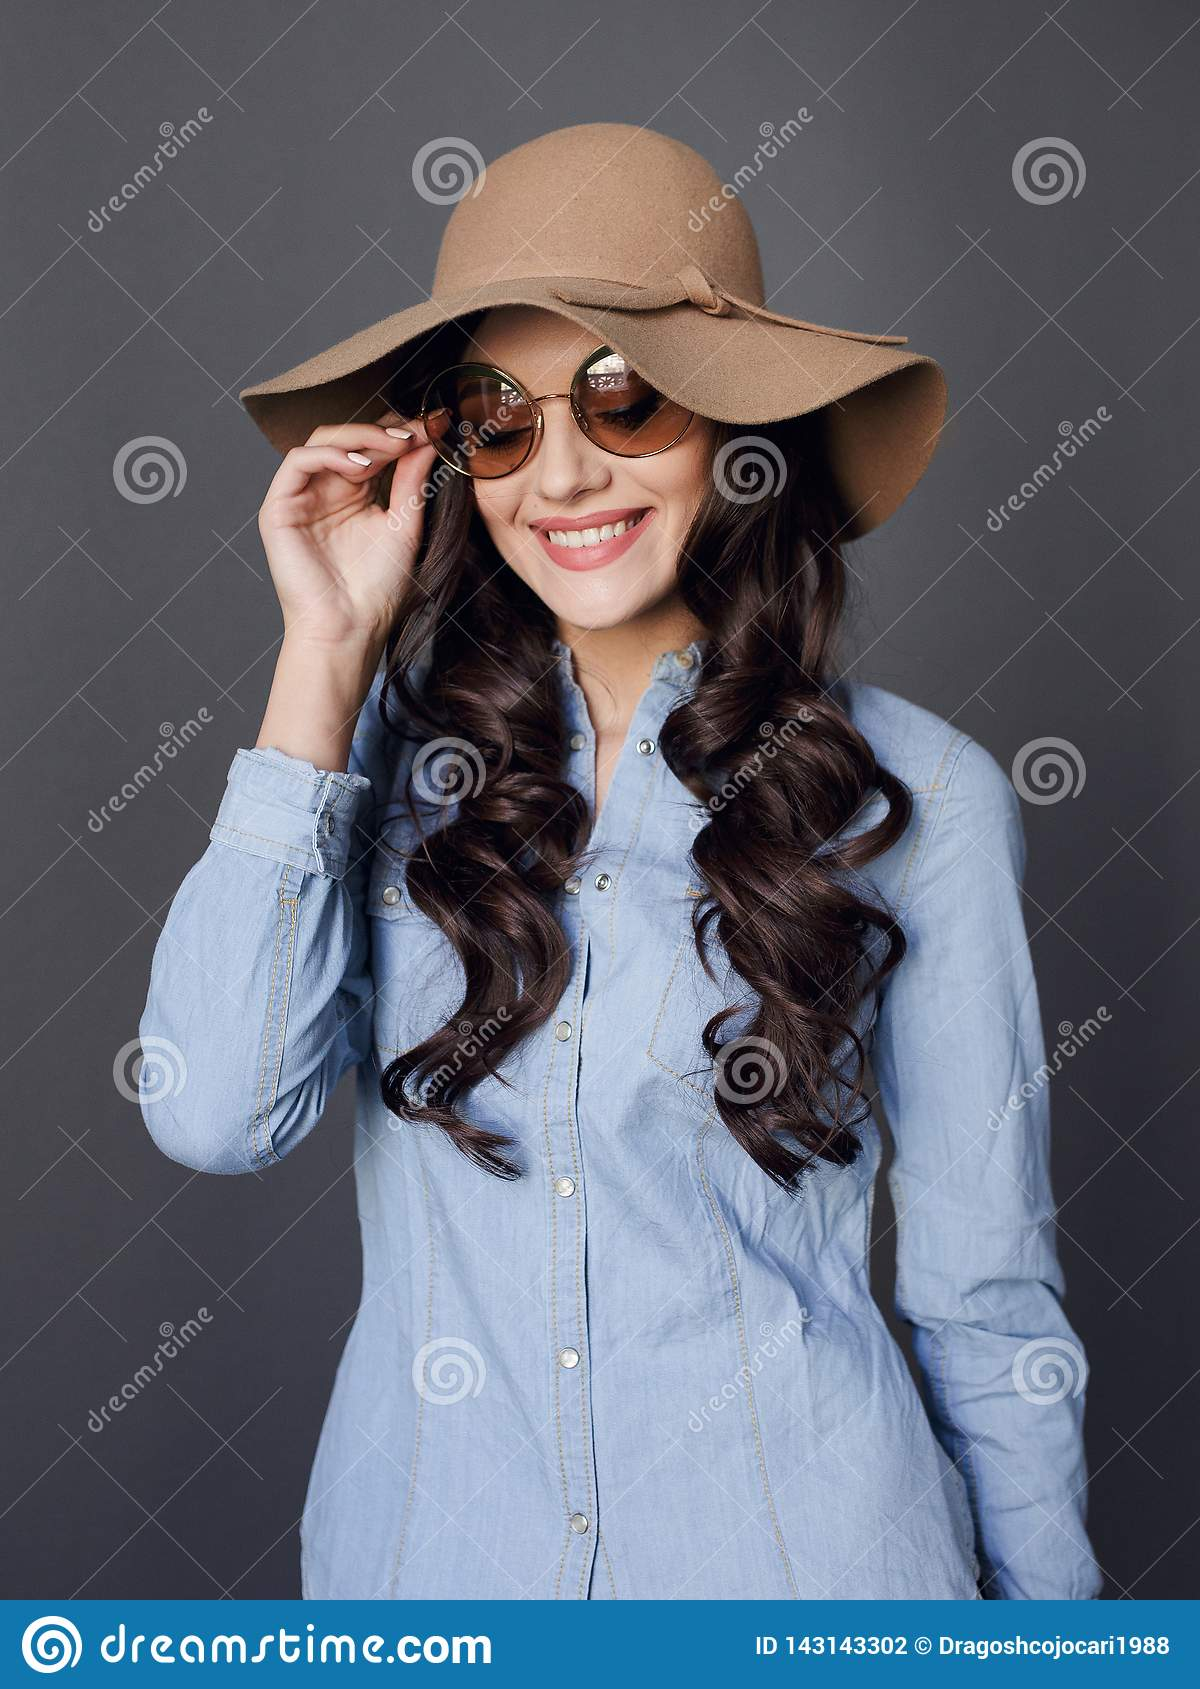 Curly haired happy brunette model, elegant dressed in hat and round sunglasses,  on a grey background.